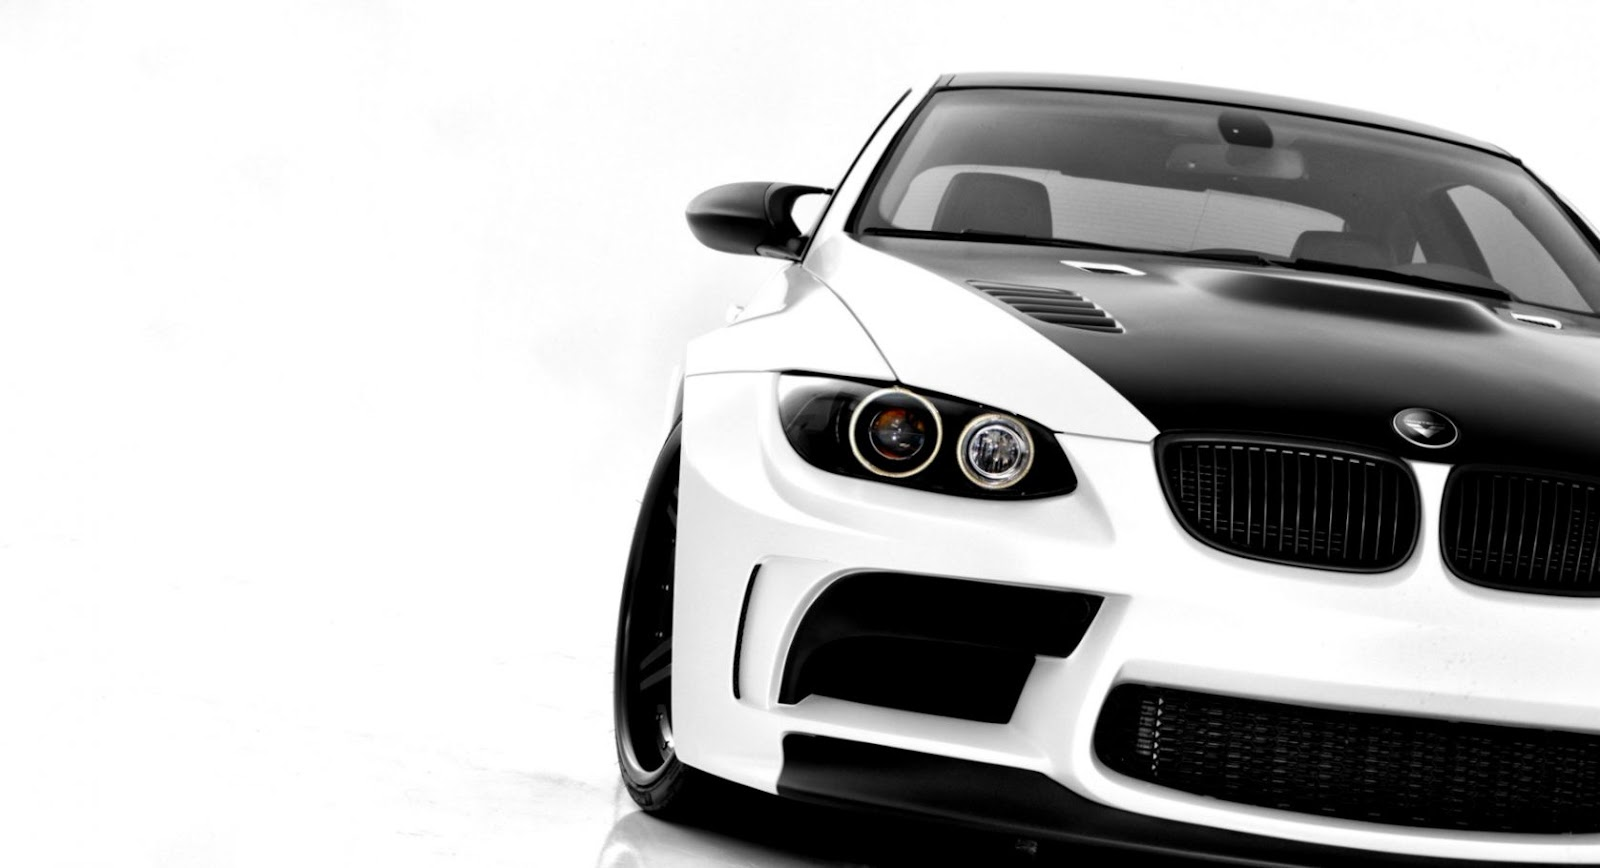 Bmw M3 E92 White Car Front Tuning Hd Wallpaper Like Wallpapers